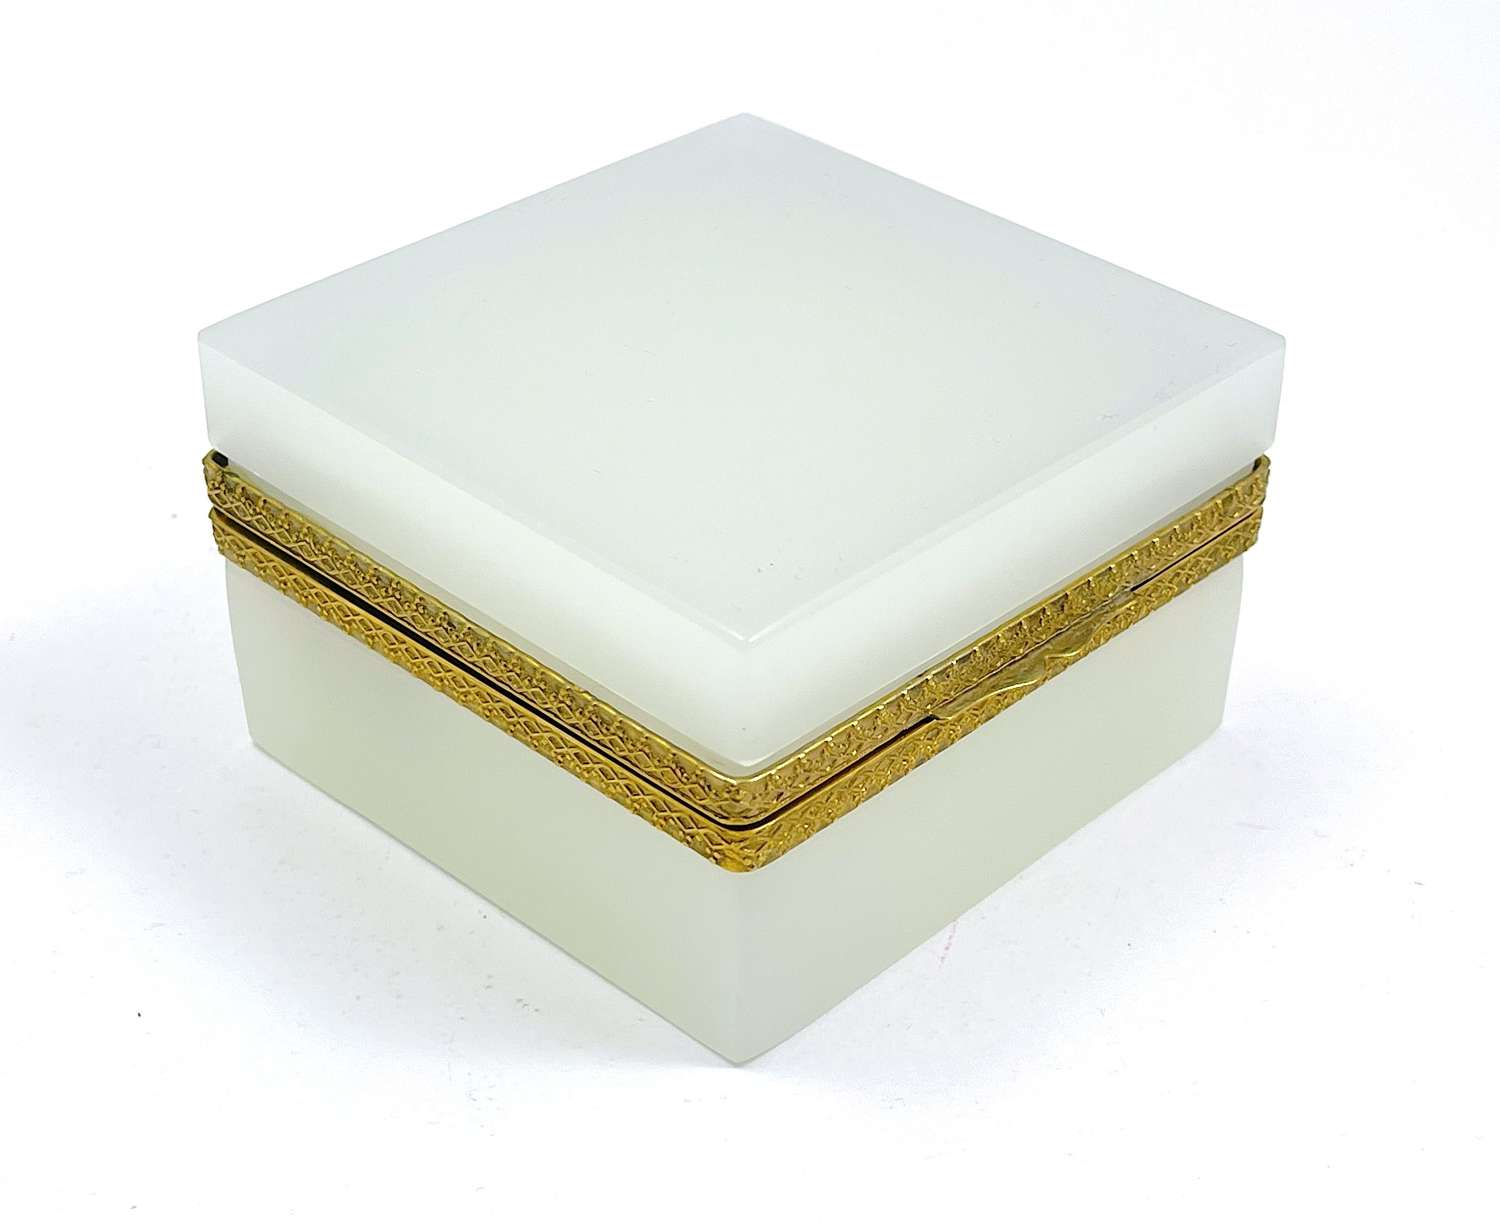 Antique White Opaline Glass Square Box with Fancy Dore Bronze Mounts